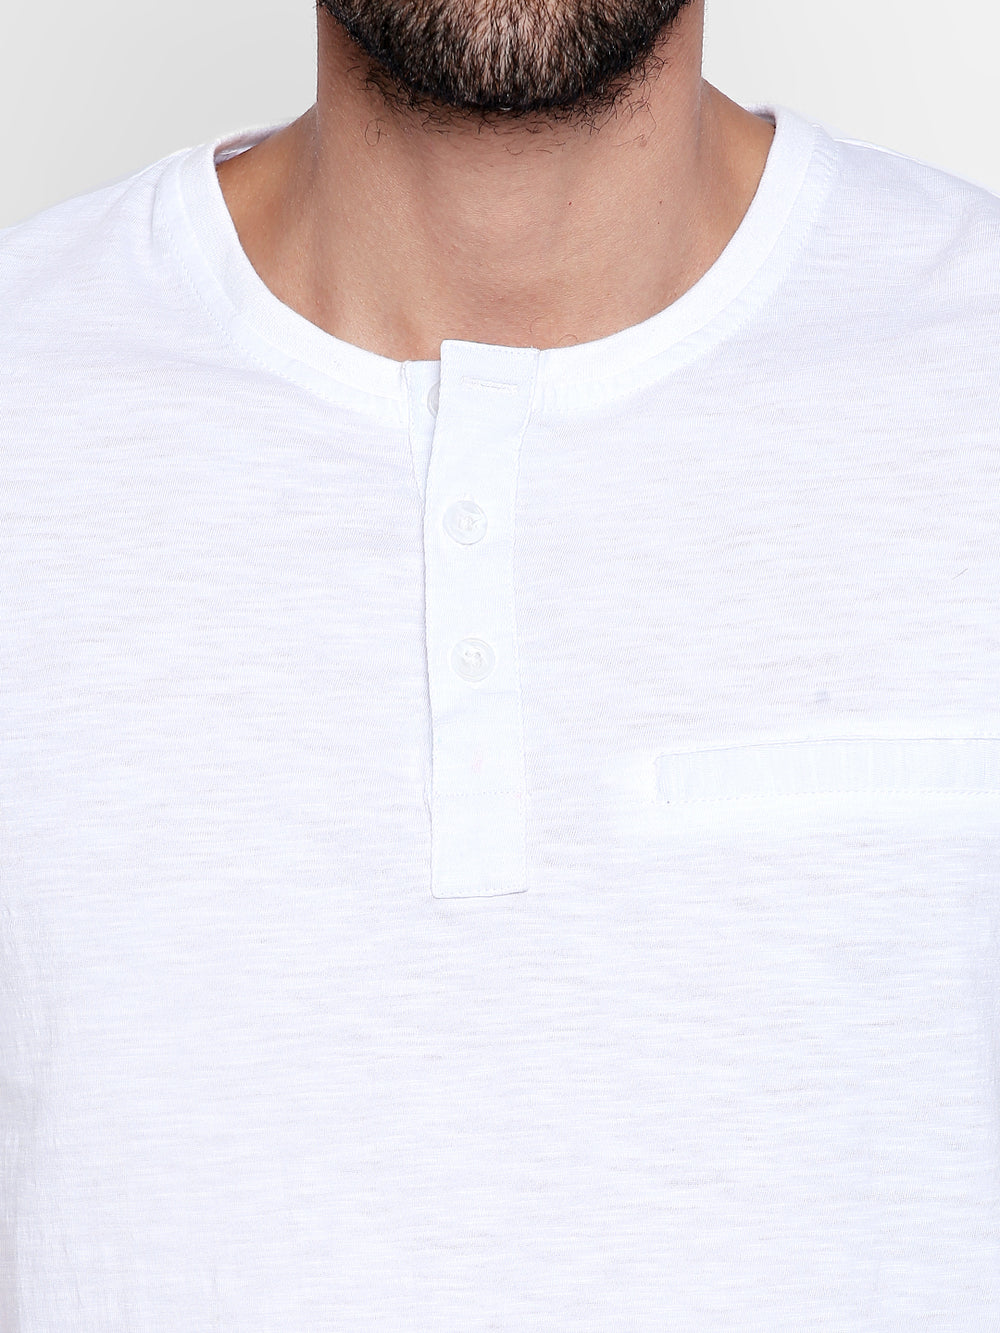 Disrupt Basic White Cotton T-Shirt